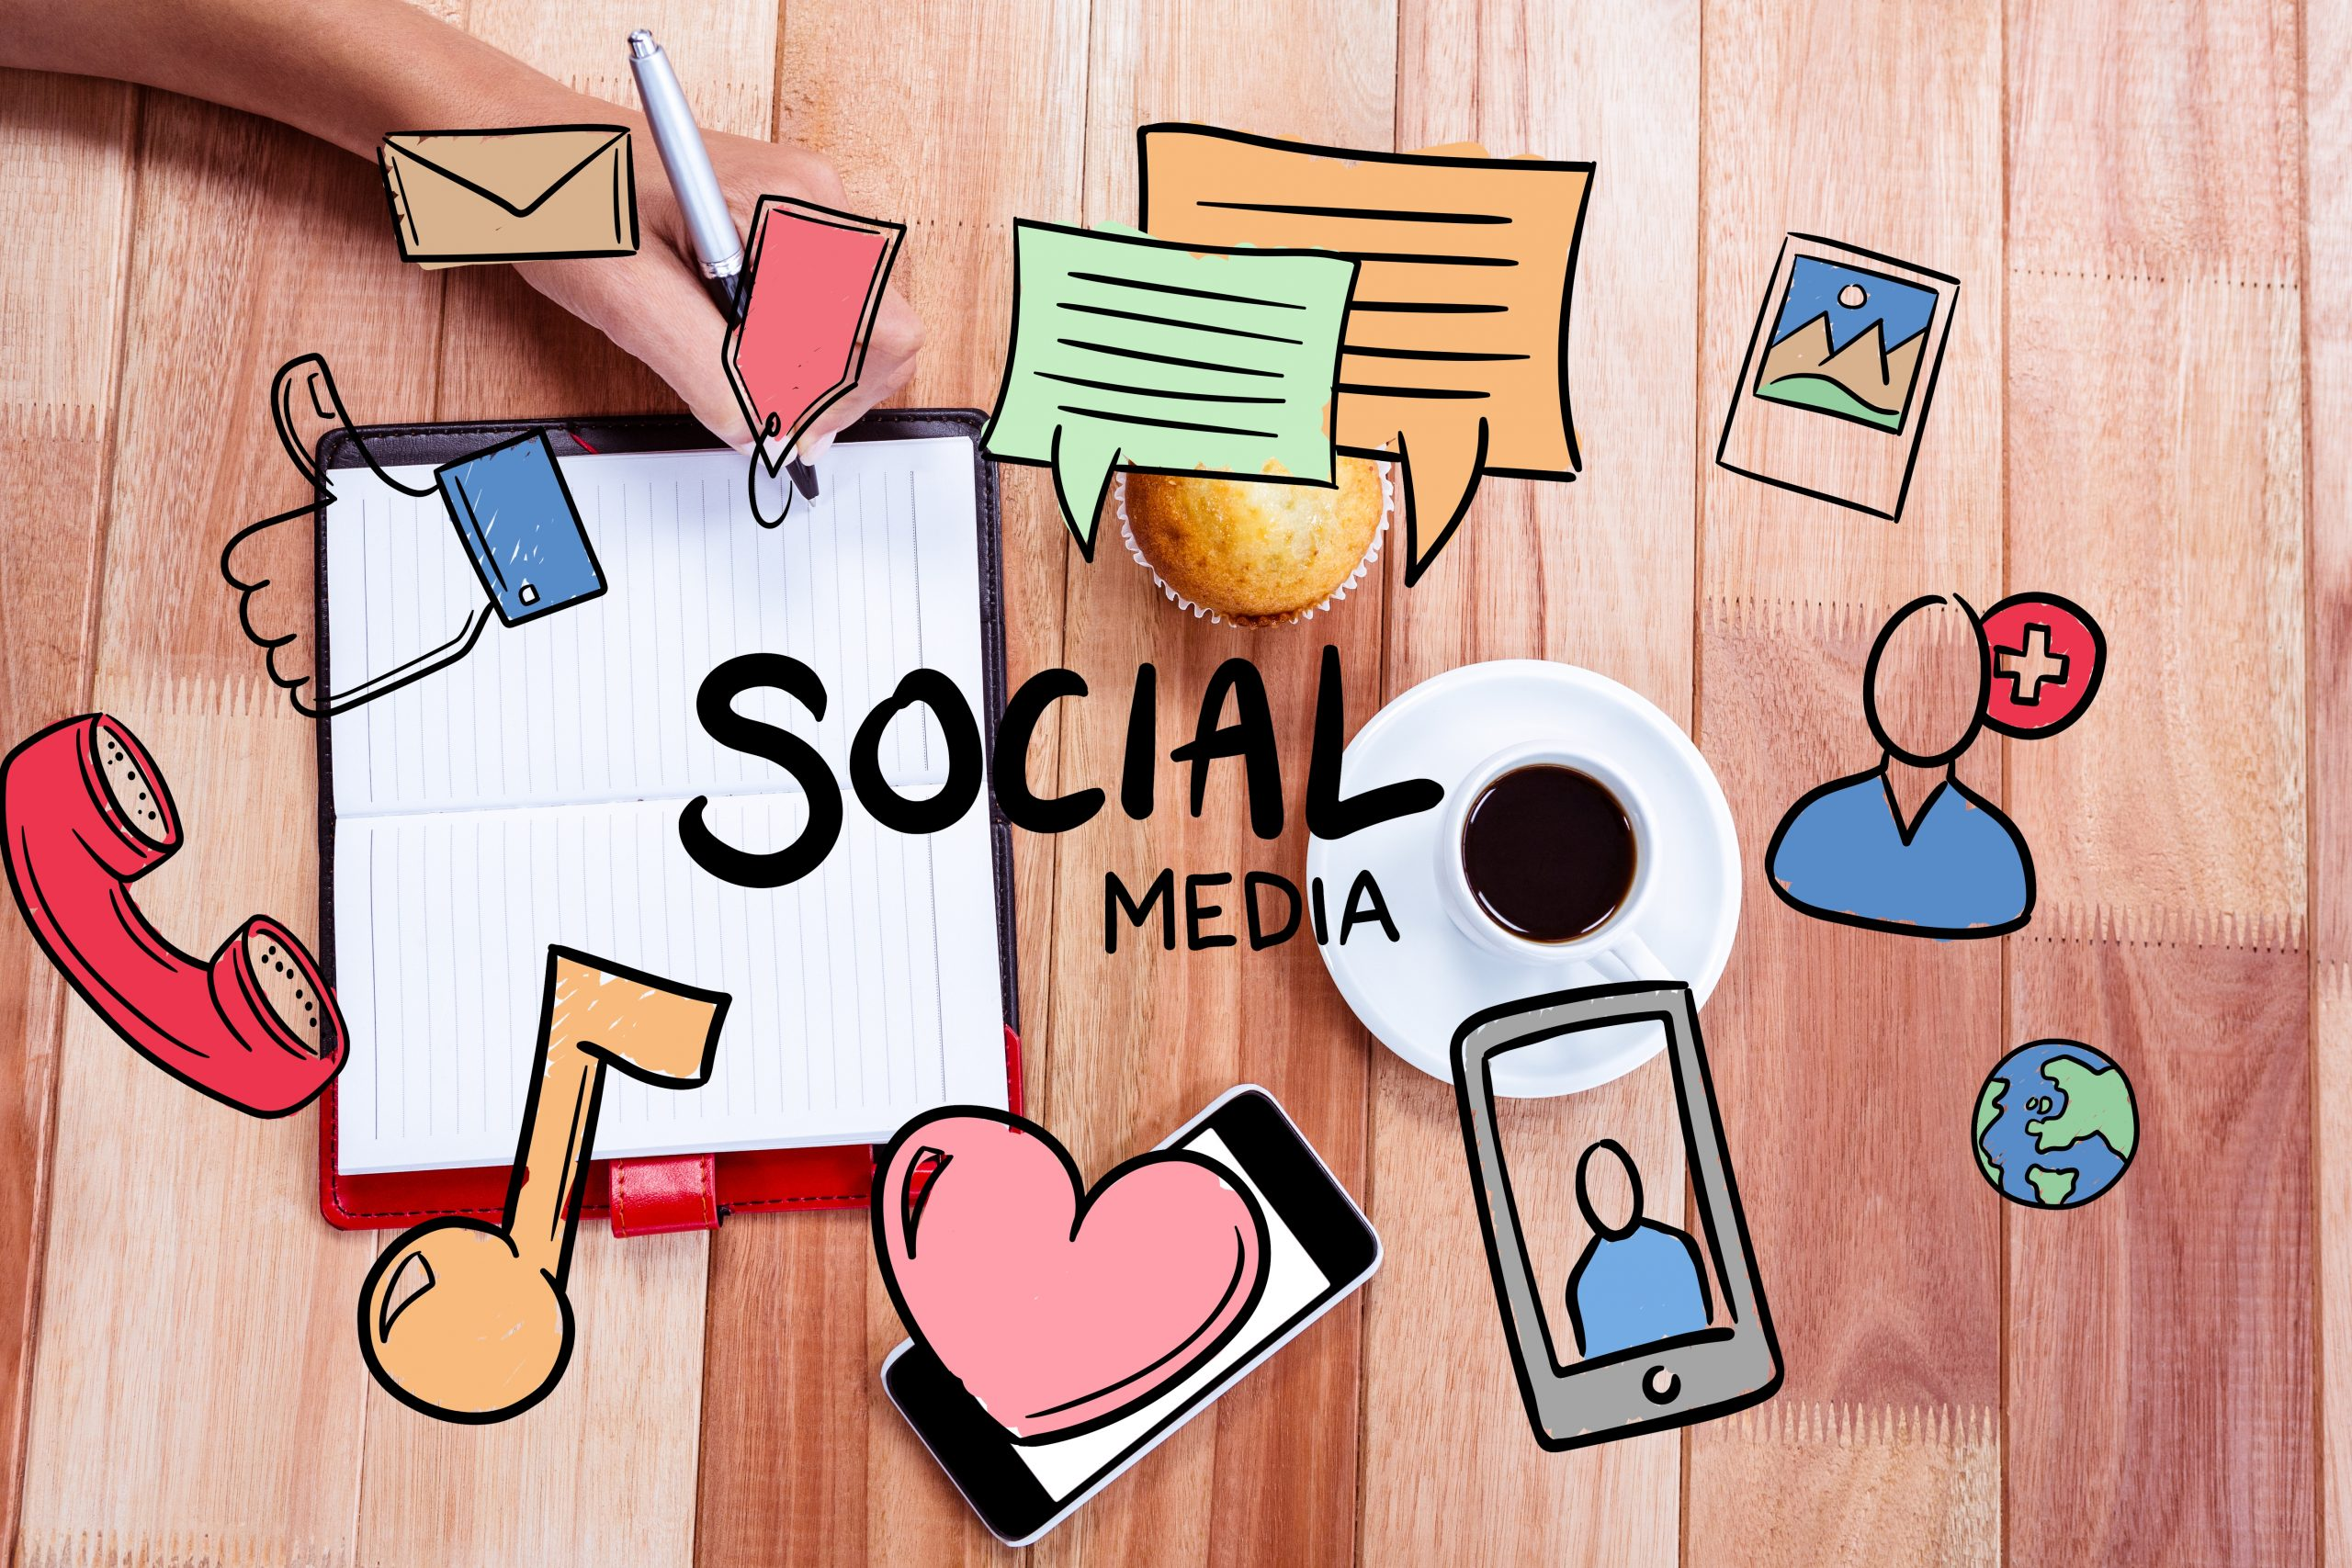 Servicio de Marketing Digital - Estrategia Social Media